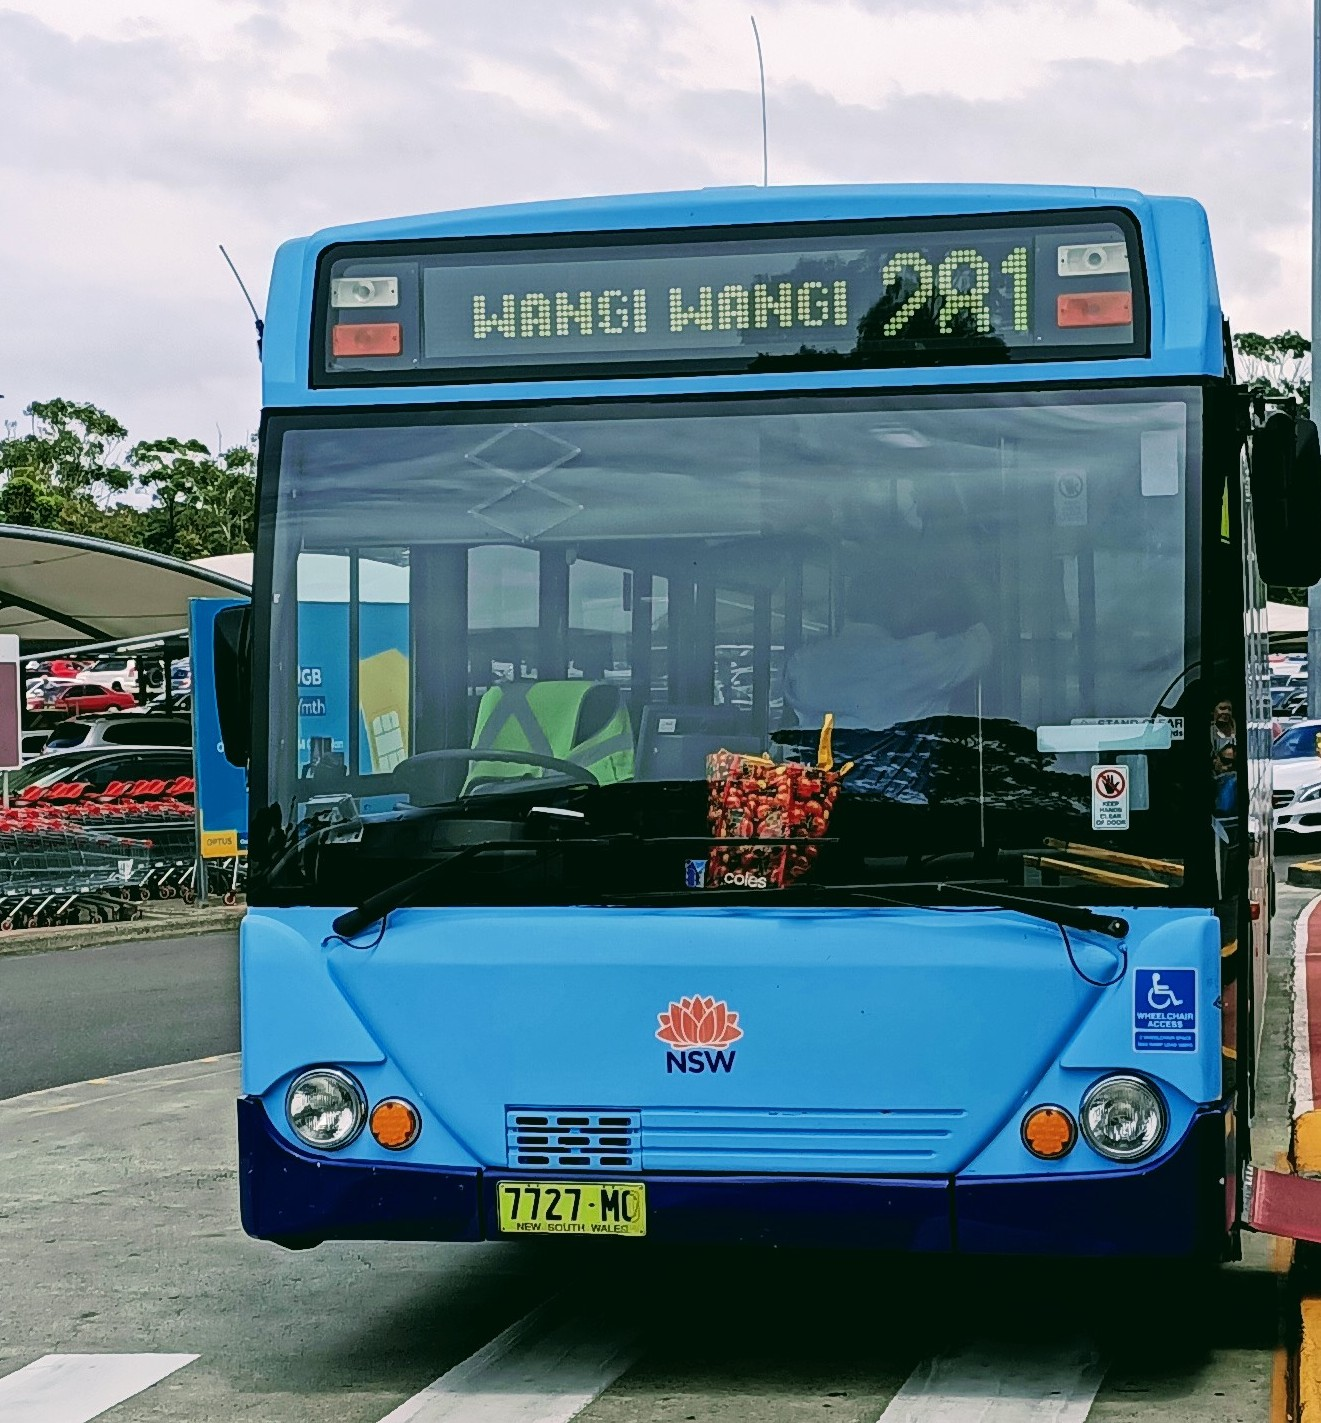 Bus #281 connects Wangi Wangi to Lake Haven.